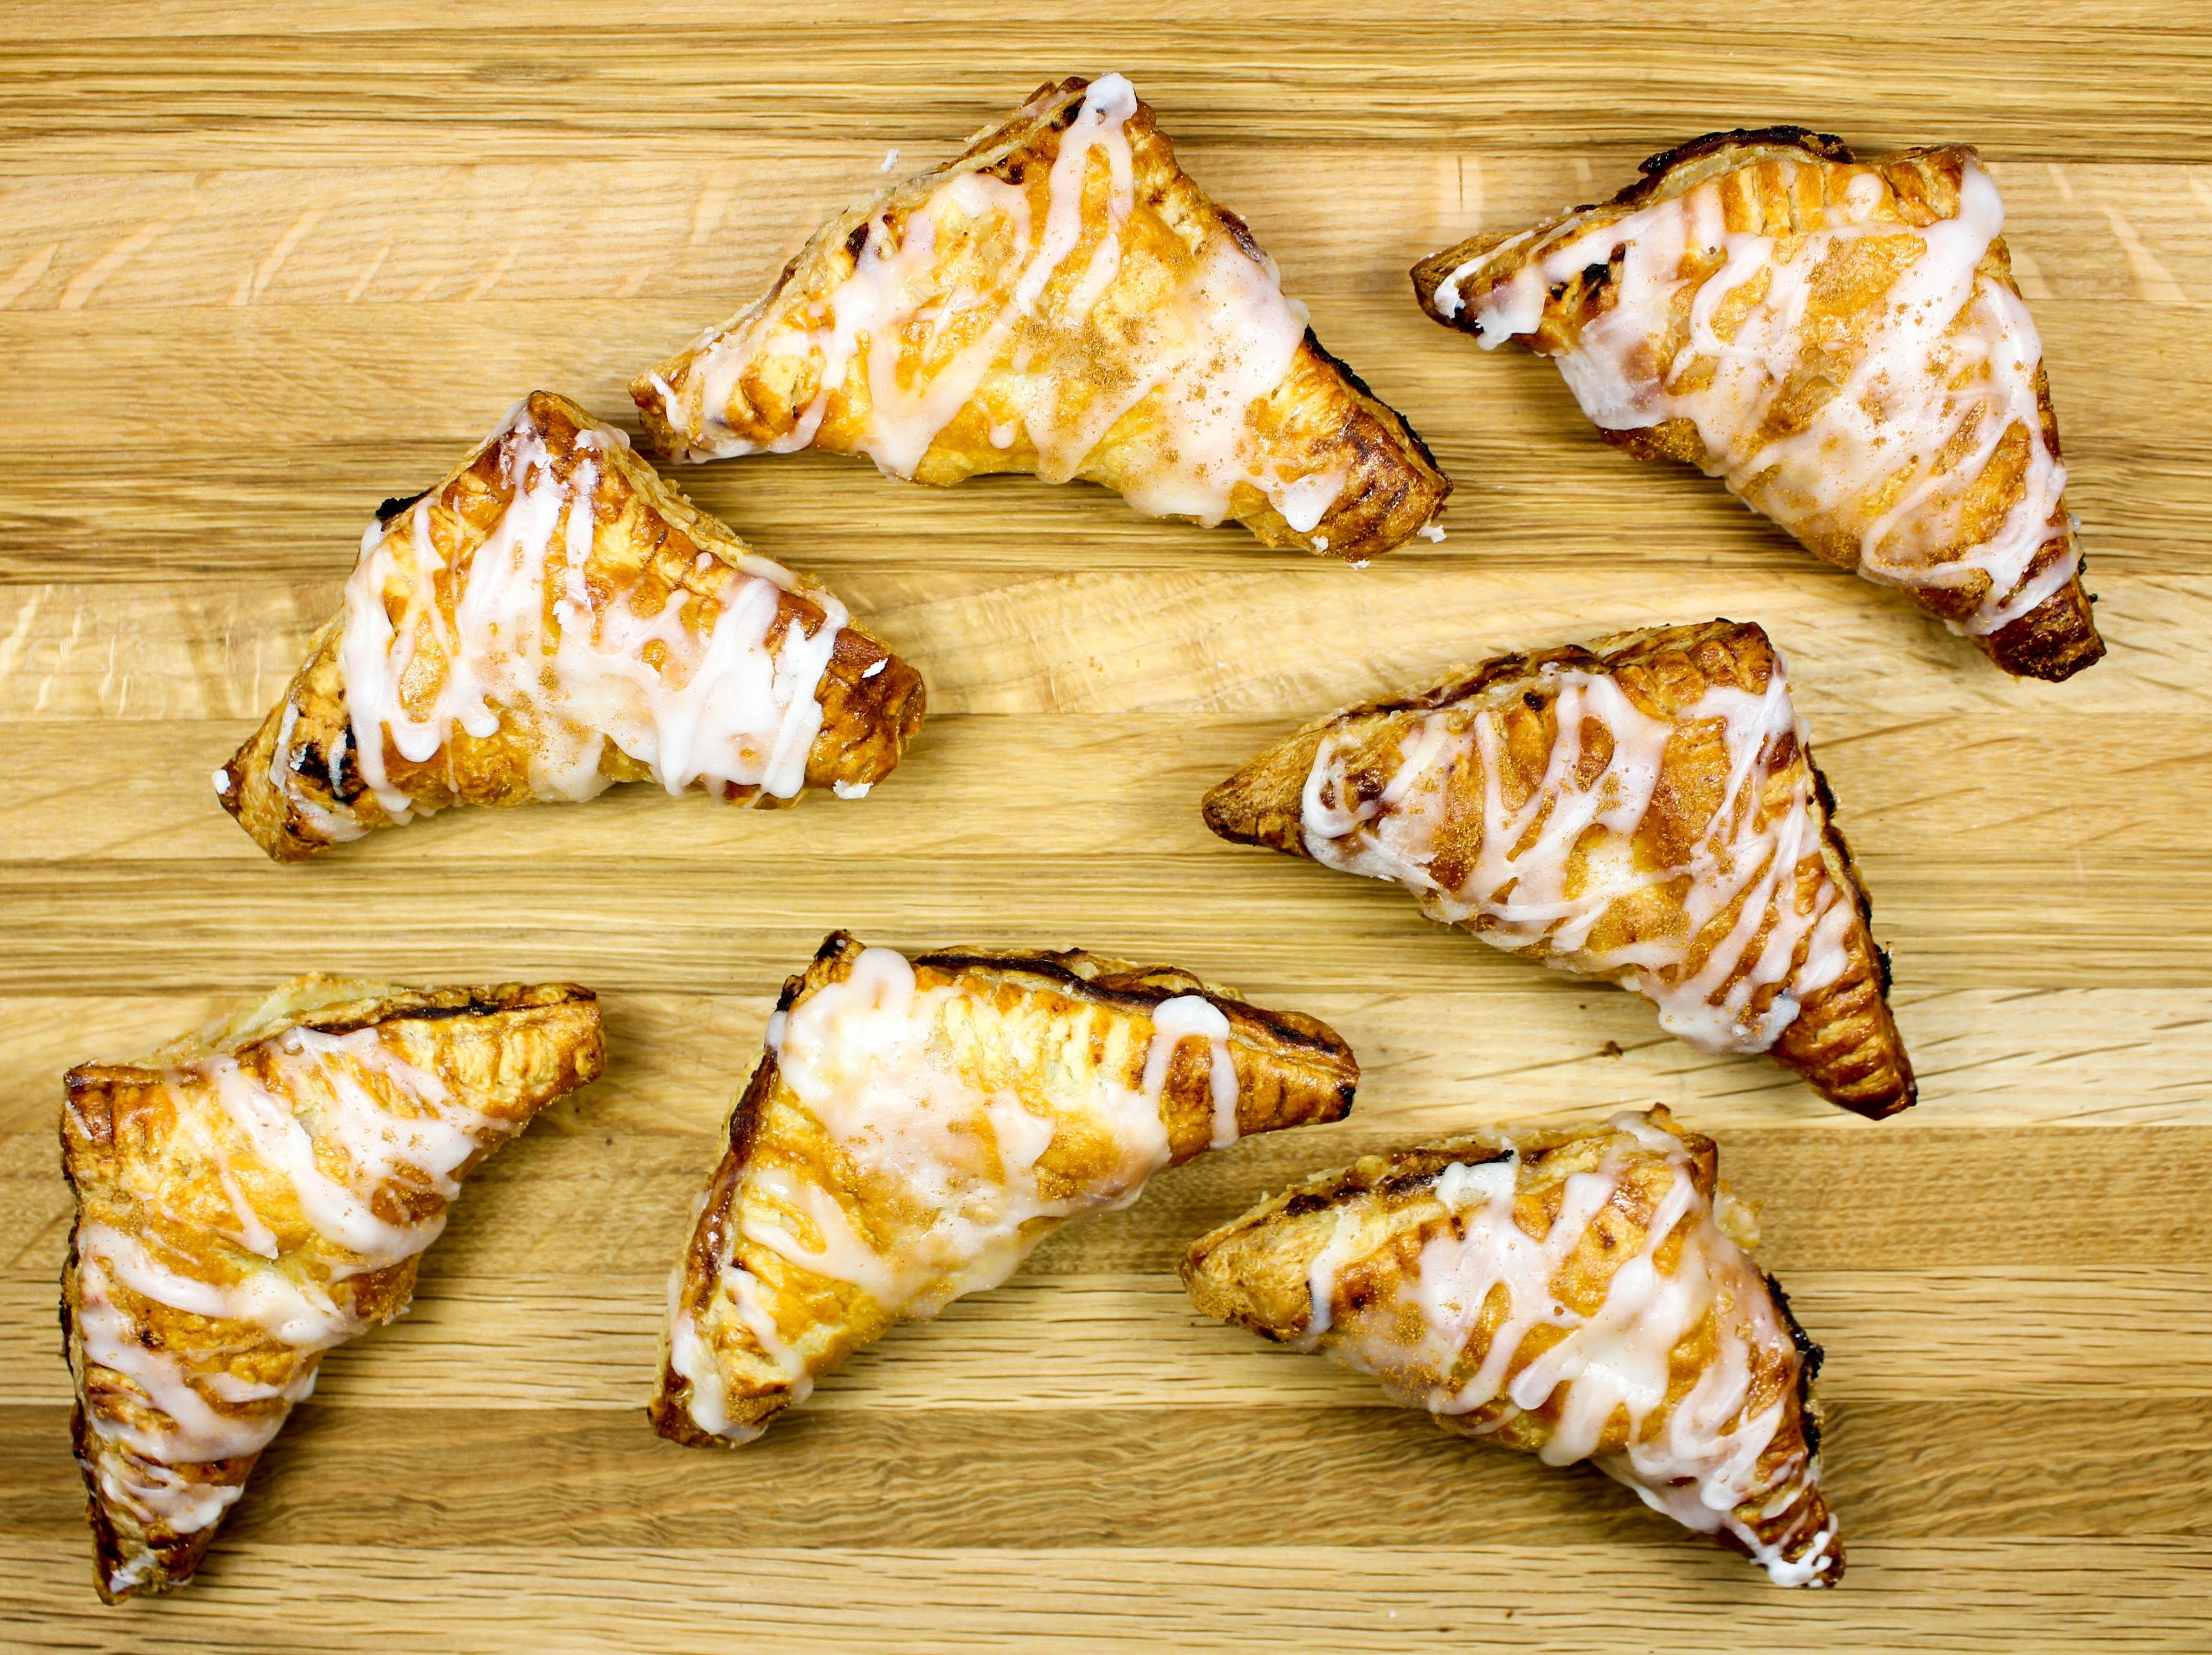 Easy Pumpkin Pie Hand Puffs-Easy & delicious dessert when you are craving pumpkin pie but don't want all the fuss. Flaky, full of delicious pumpkin flavors, & low fat! A great healthy dessert idea for the holidays, or anytime! Weight Watchers friendly (6 SmartPoints)!